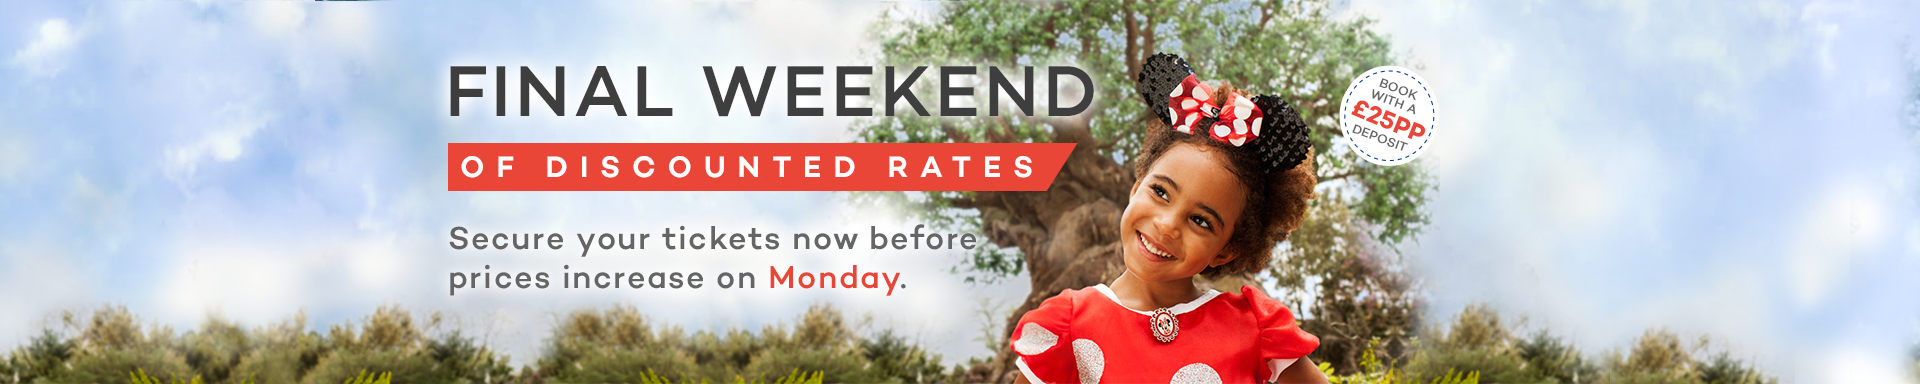 FINAL WEEKEND OF DISCOUNTED RATES